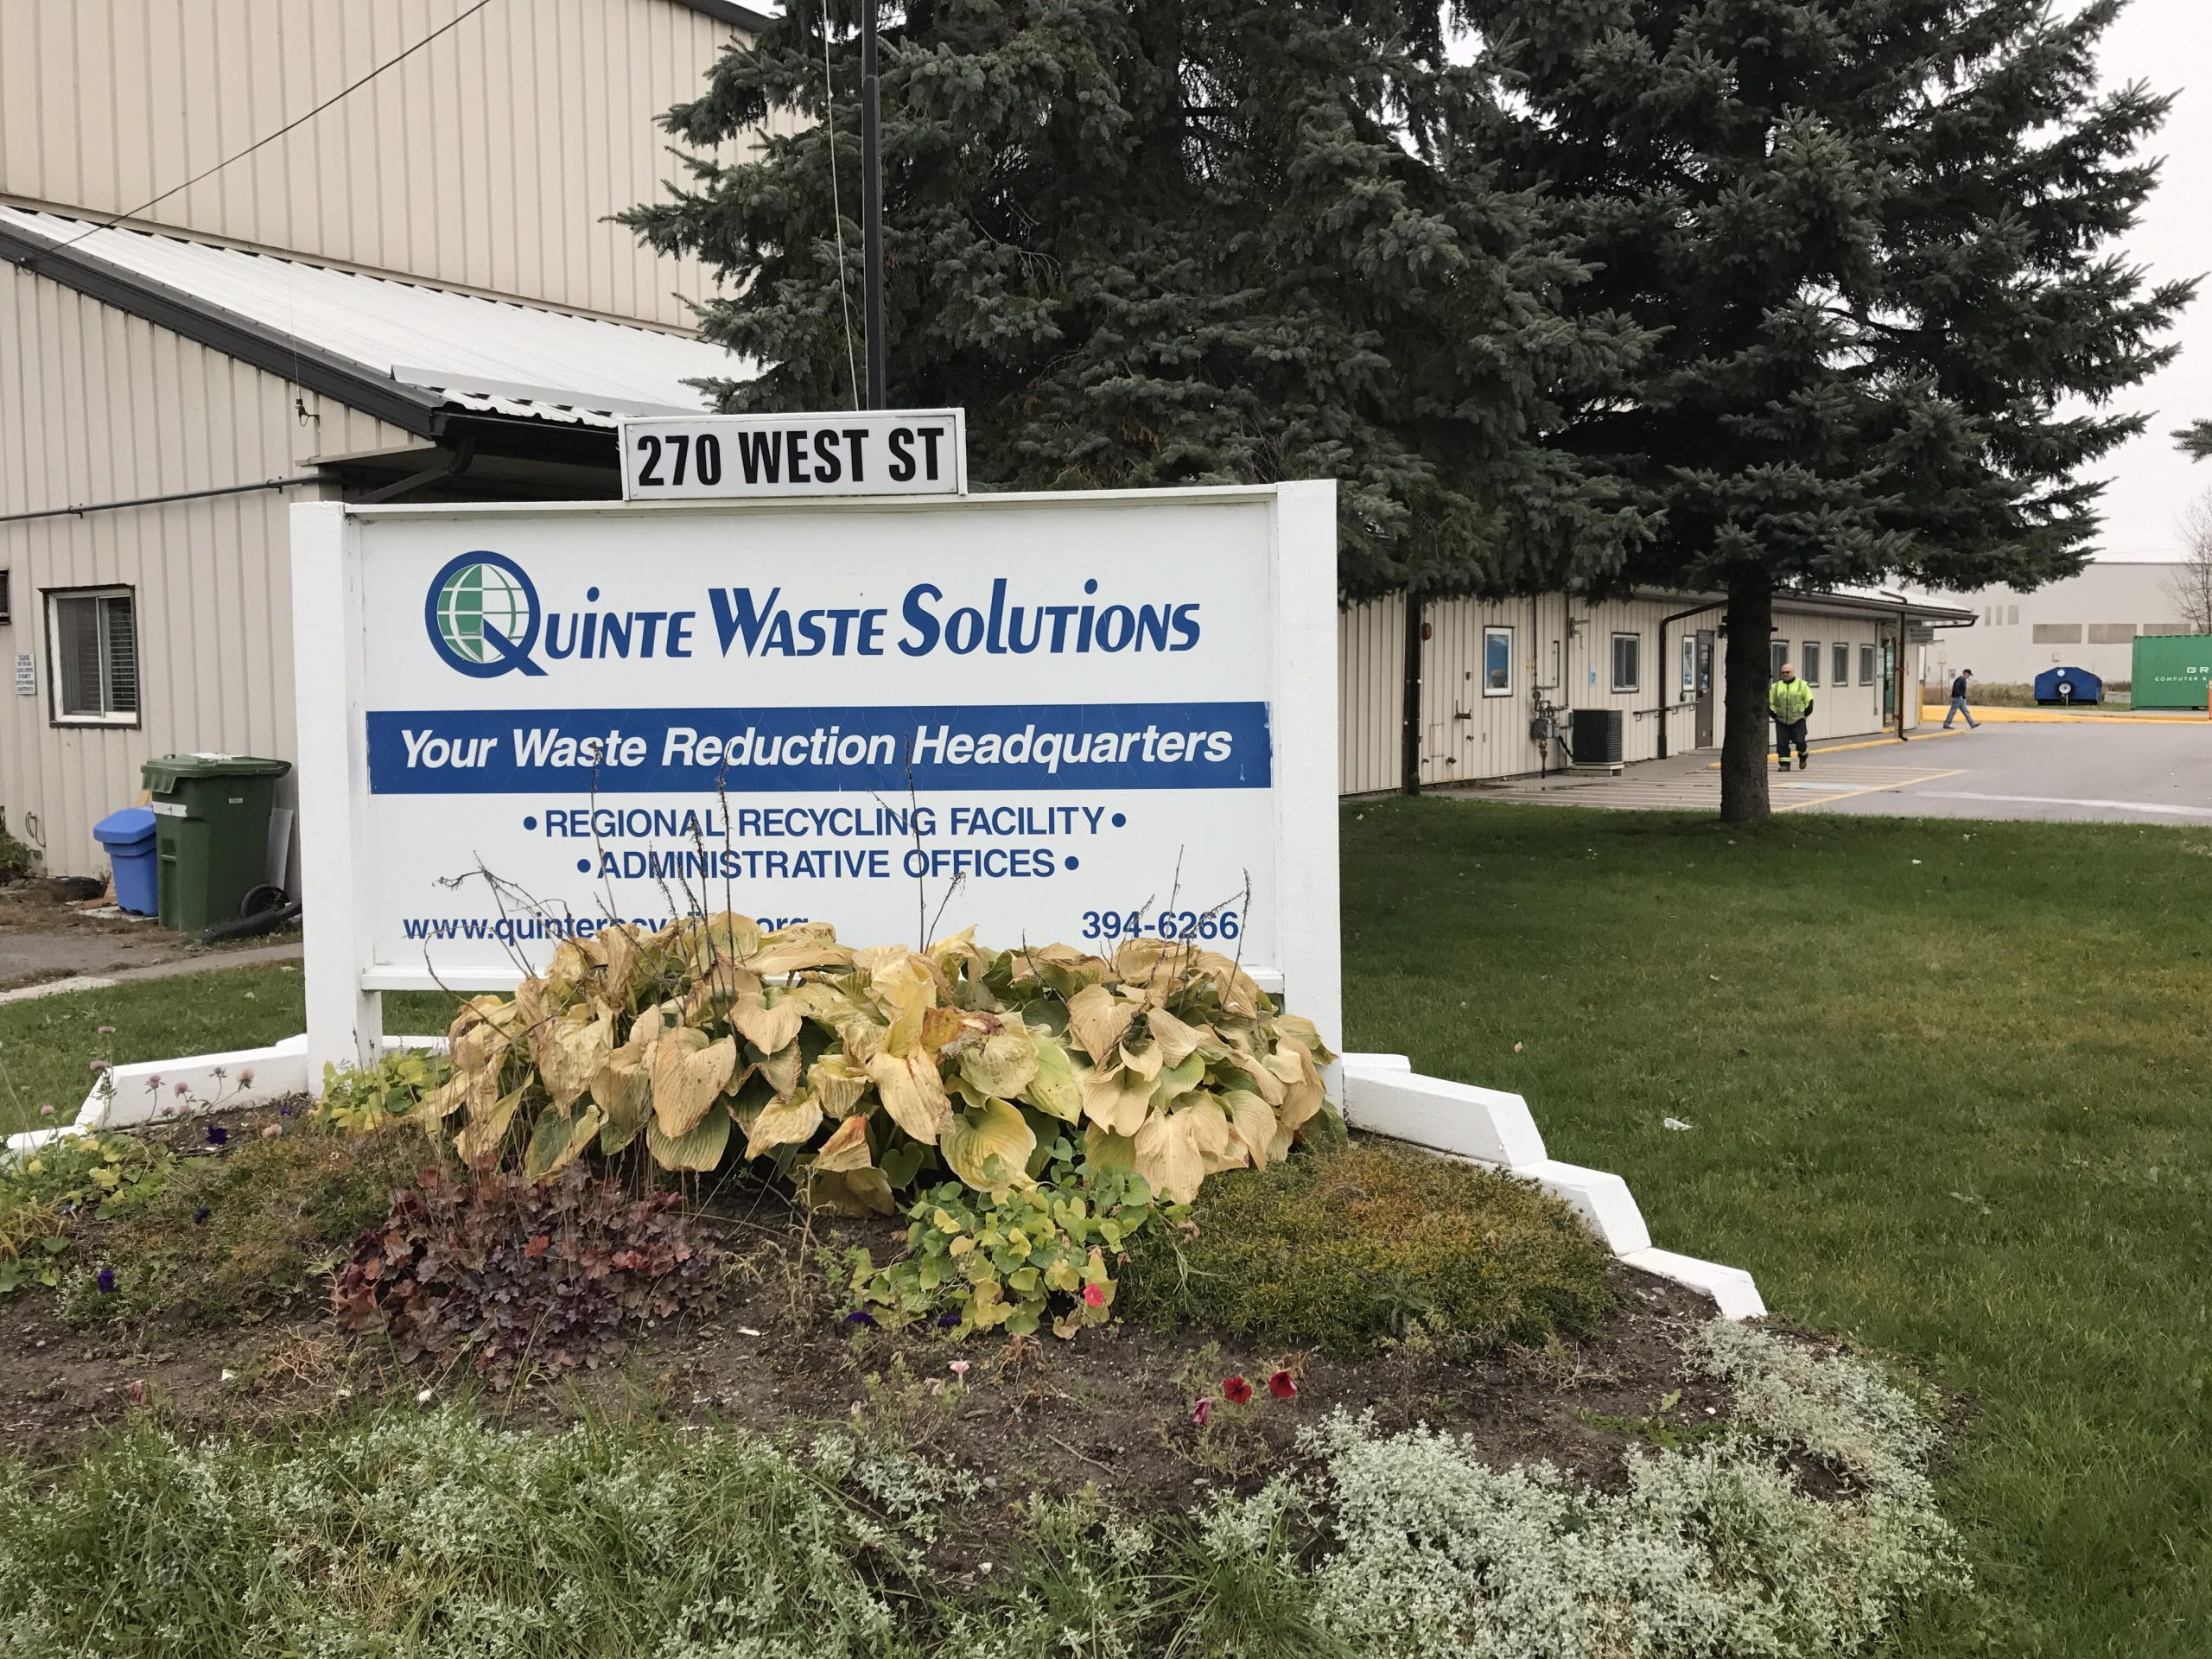 Small blaze at Quinte Waste Solutions